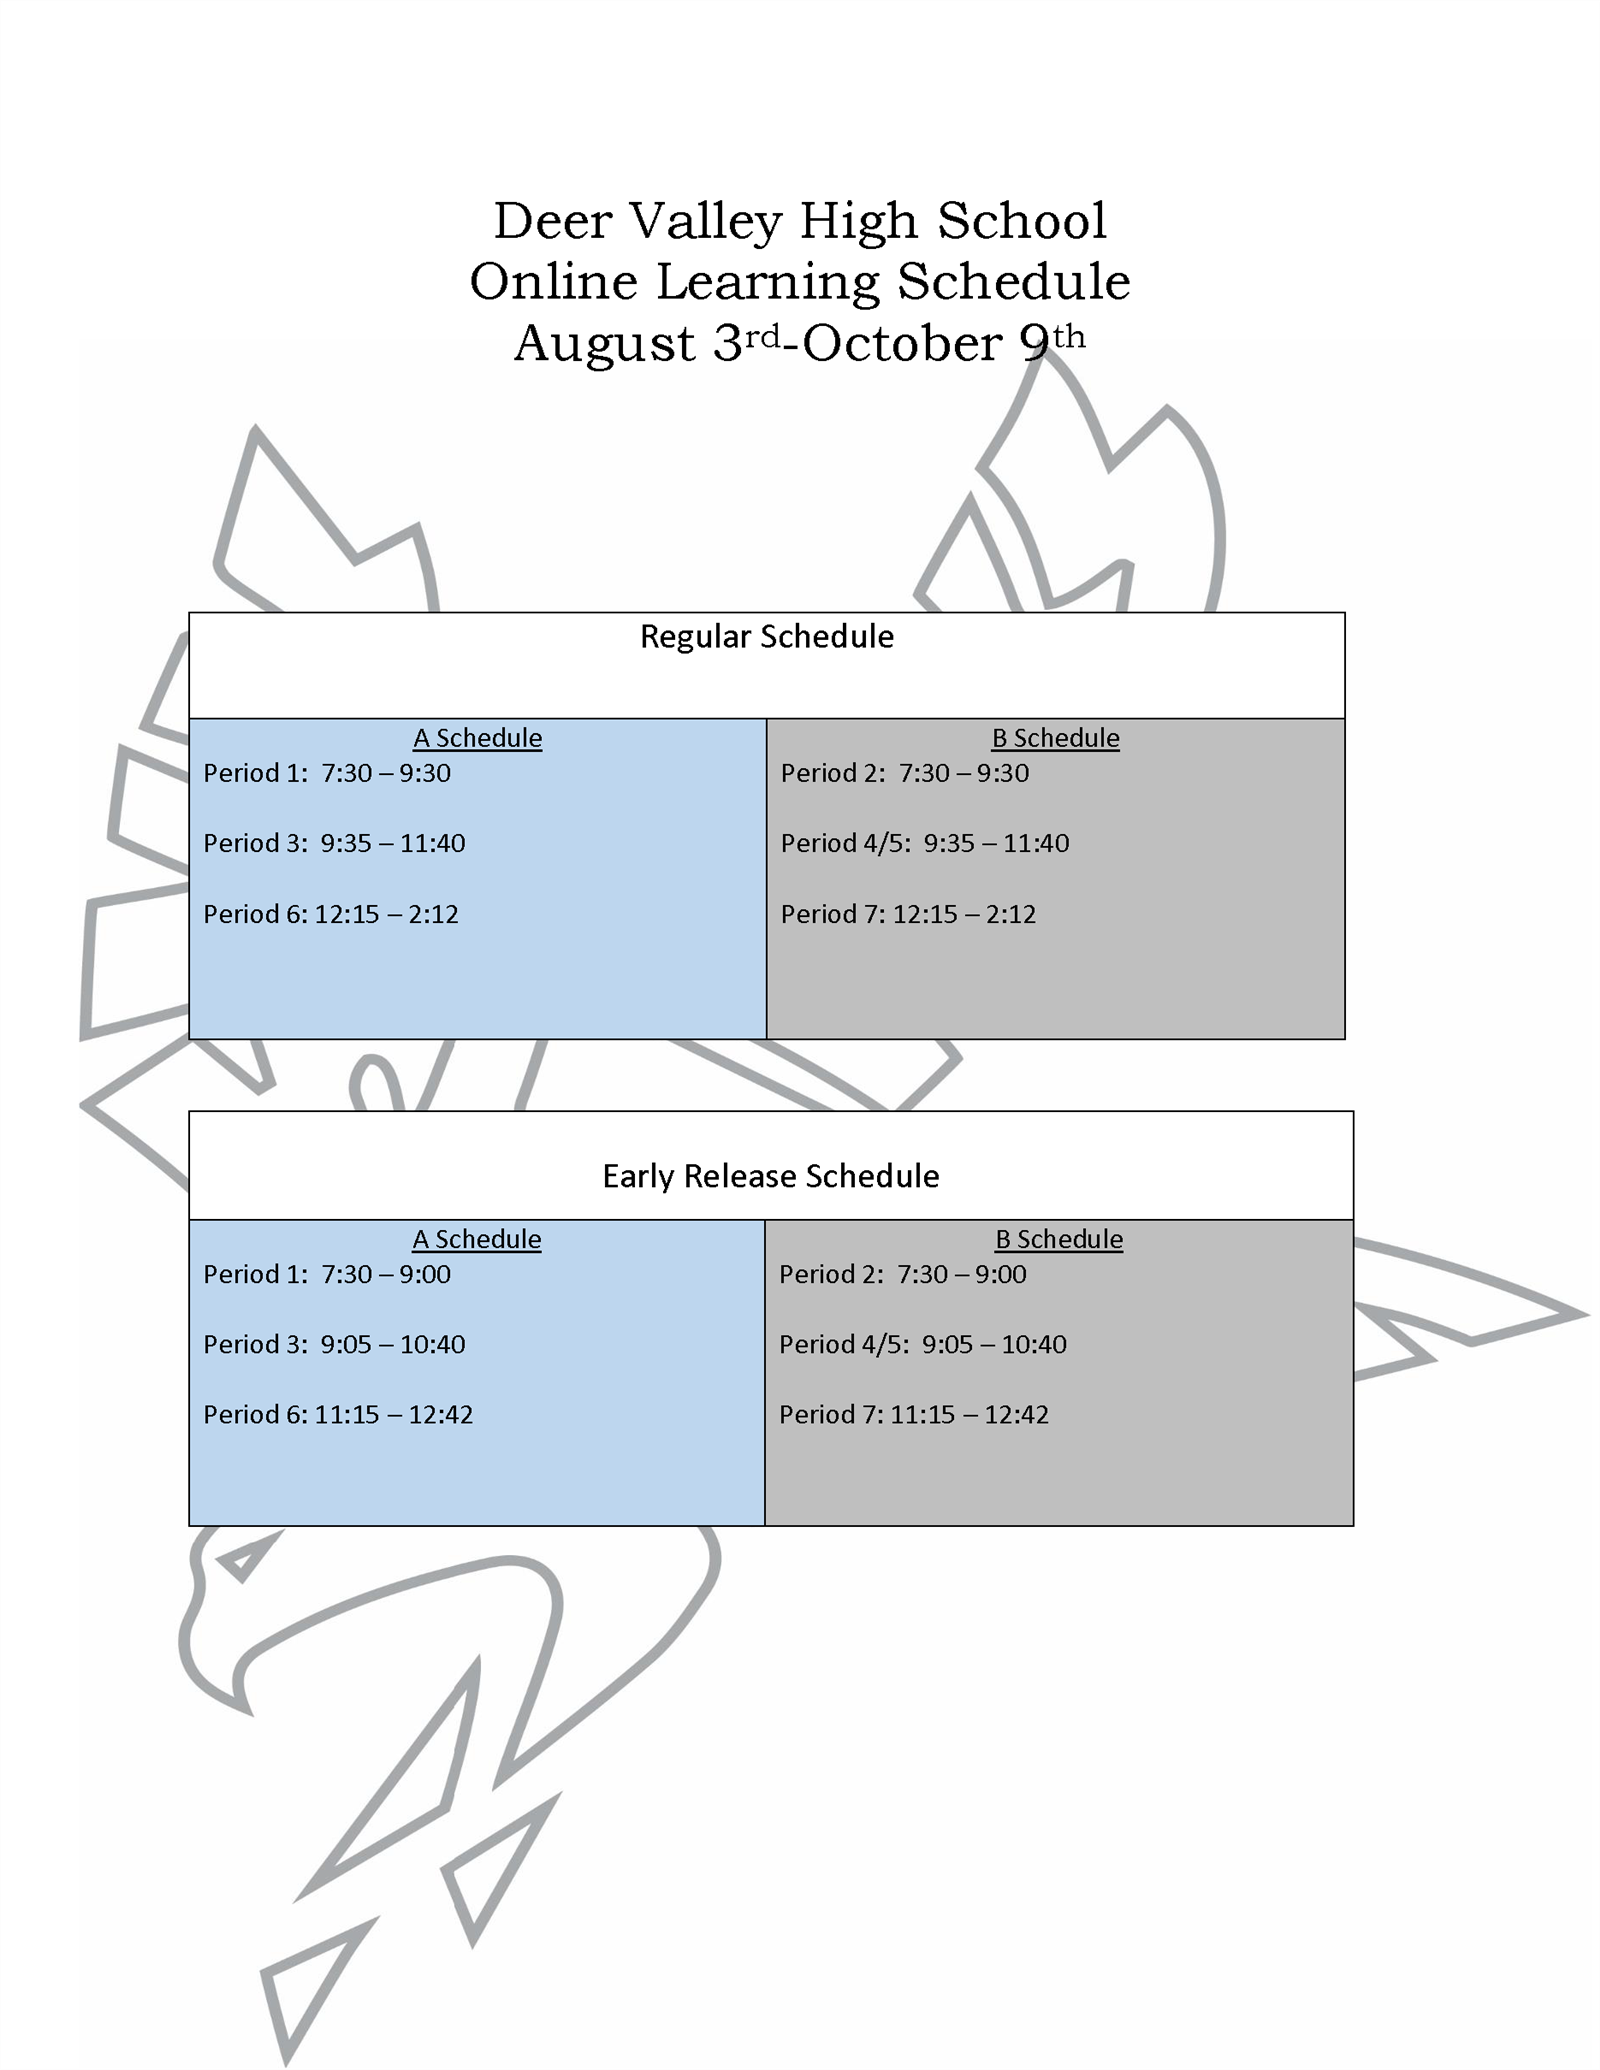 Online Learning Schedule